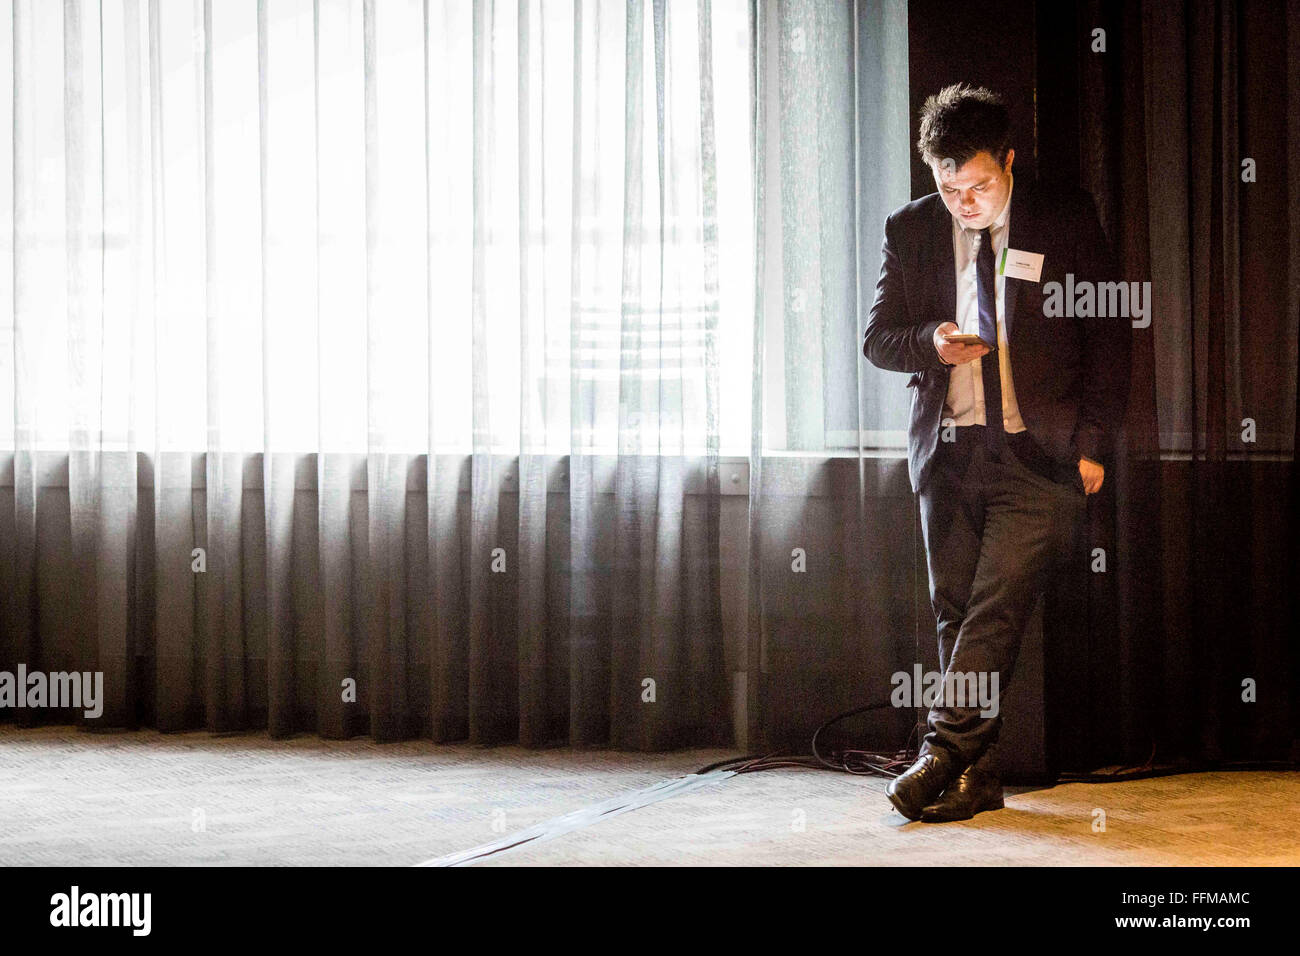 a man in a suit looks at his mobile phone - Stock Image